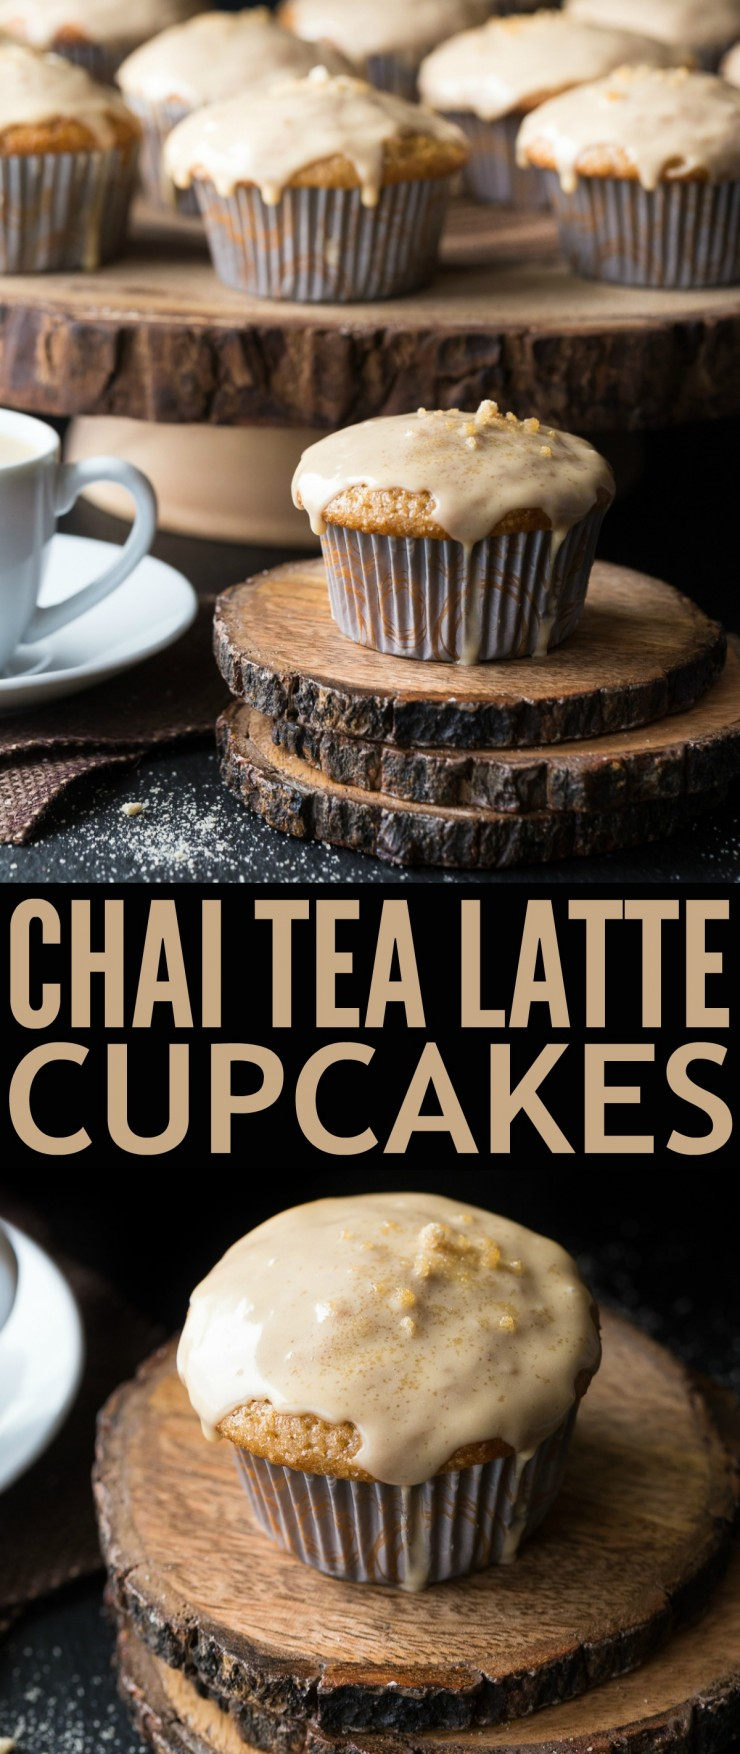 These Chai Tea Latte Cupcakes are deliciously sweet with just a hint ...